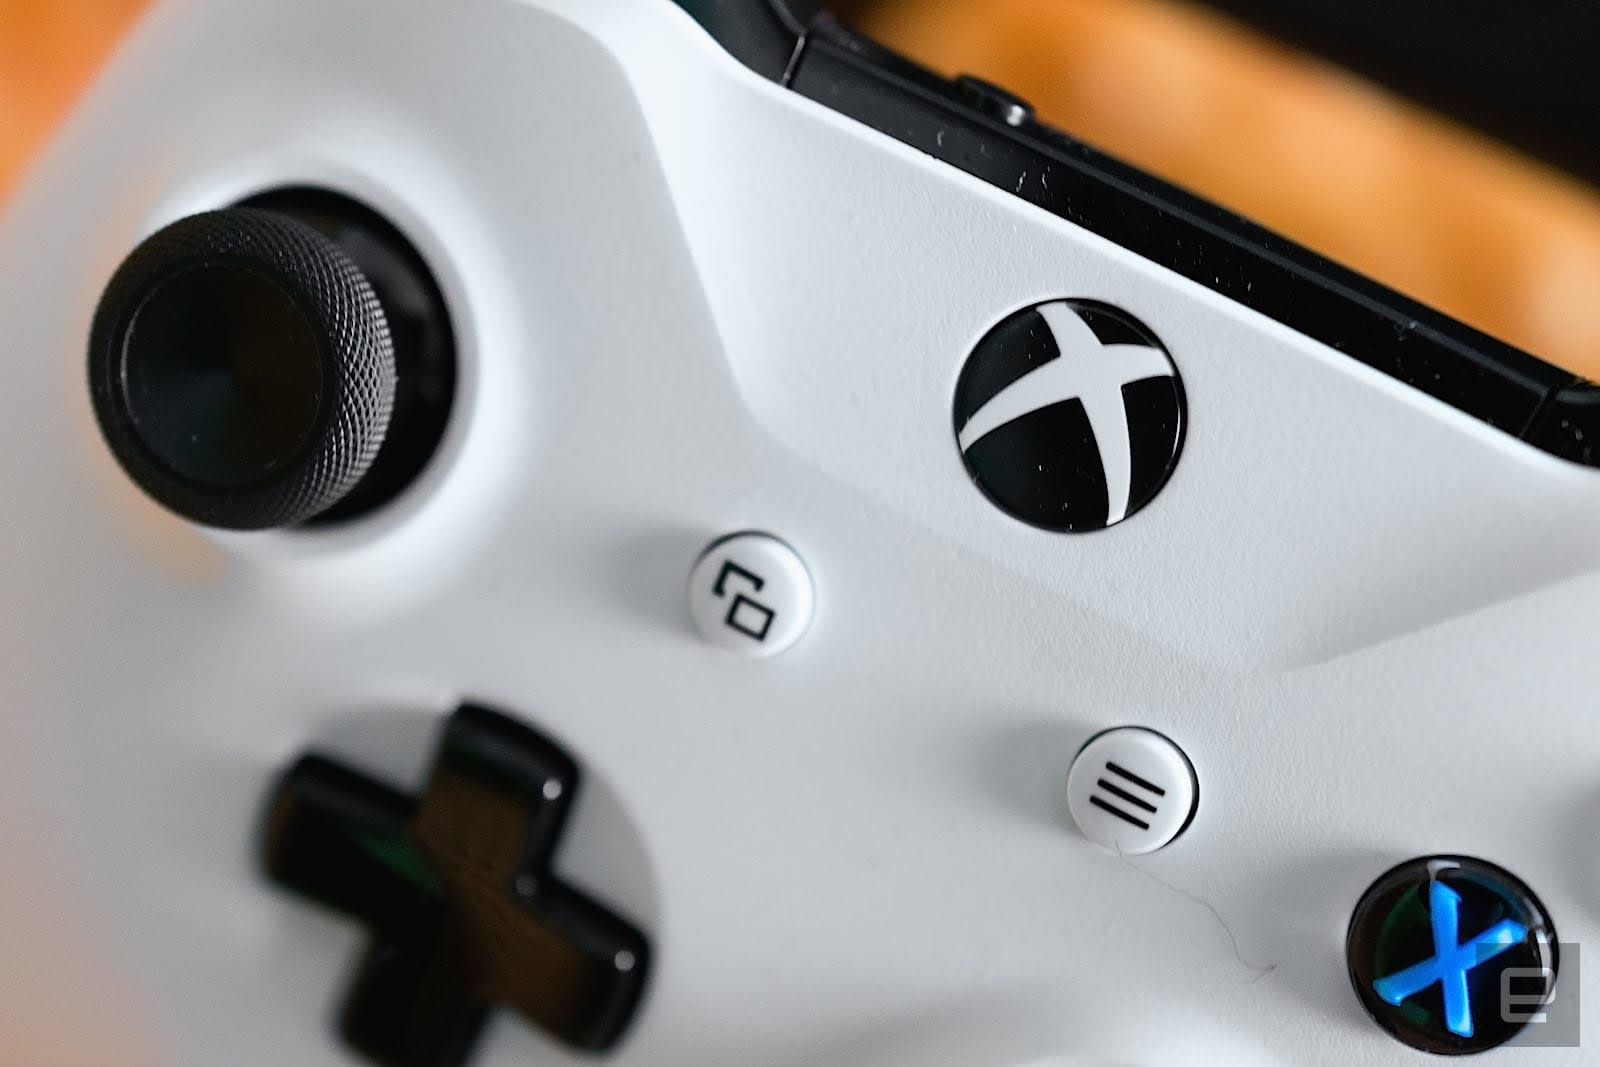 Microsoft invites more people to test very rough Xbox features